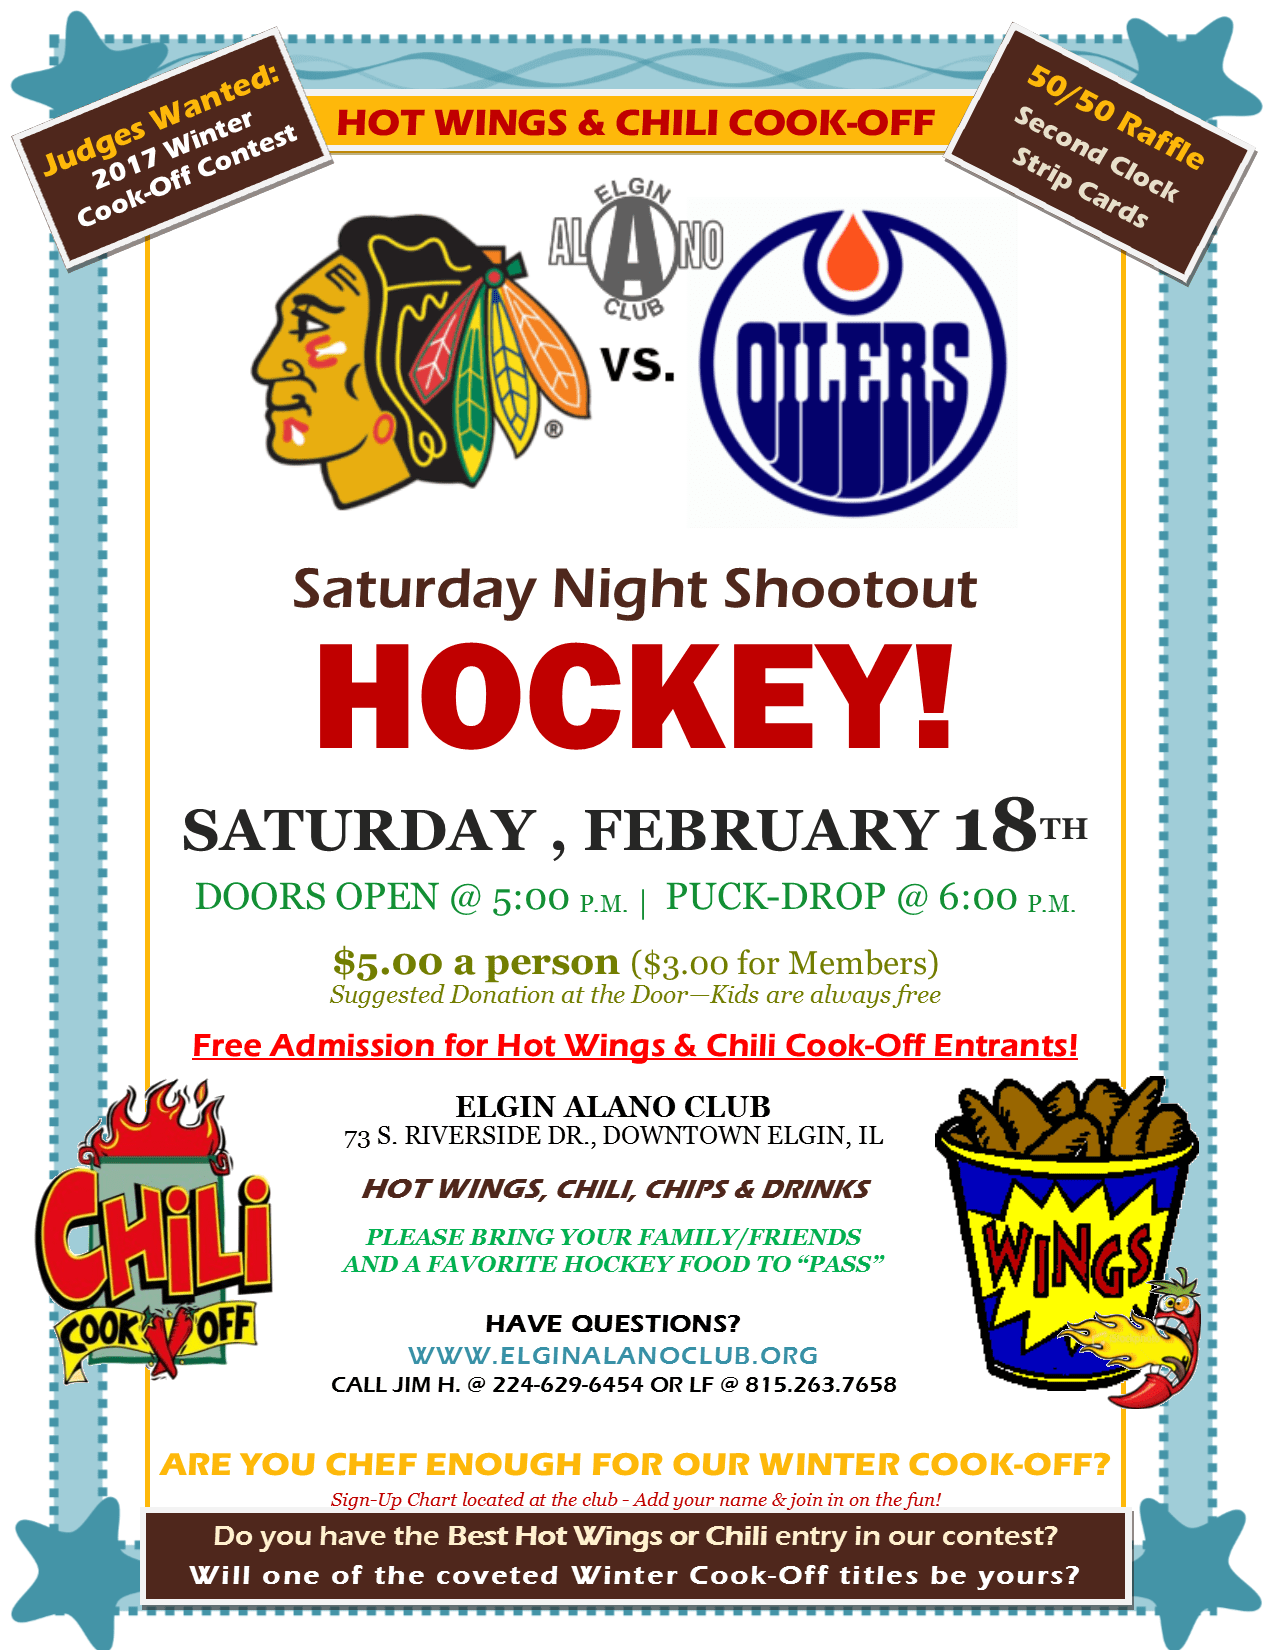 Winter Cook-Off and Saturday Night Shootout Hockey 1